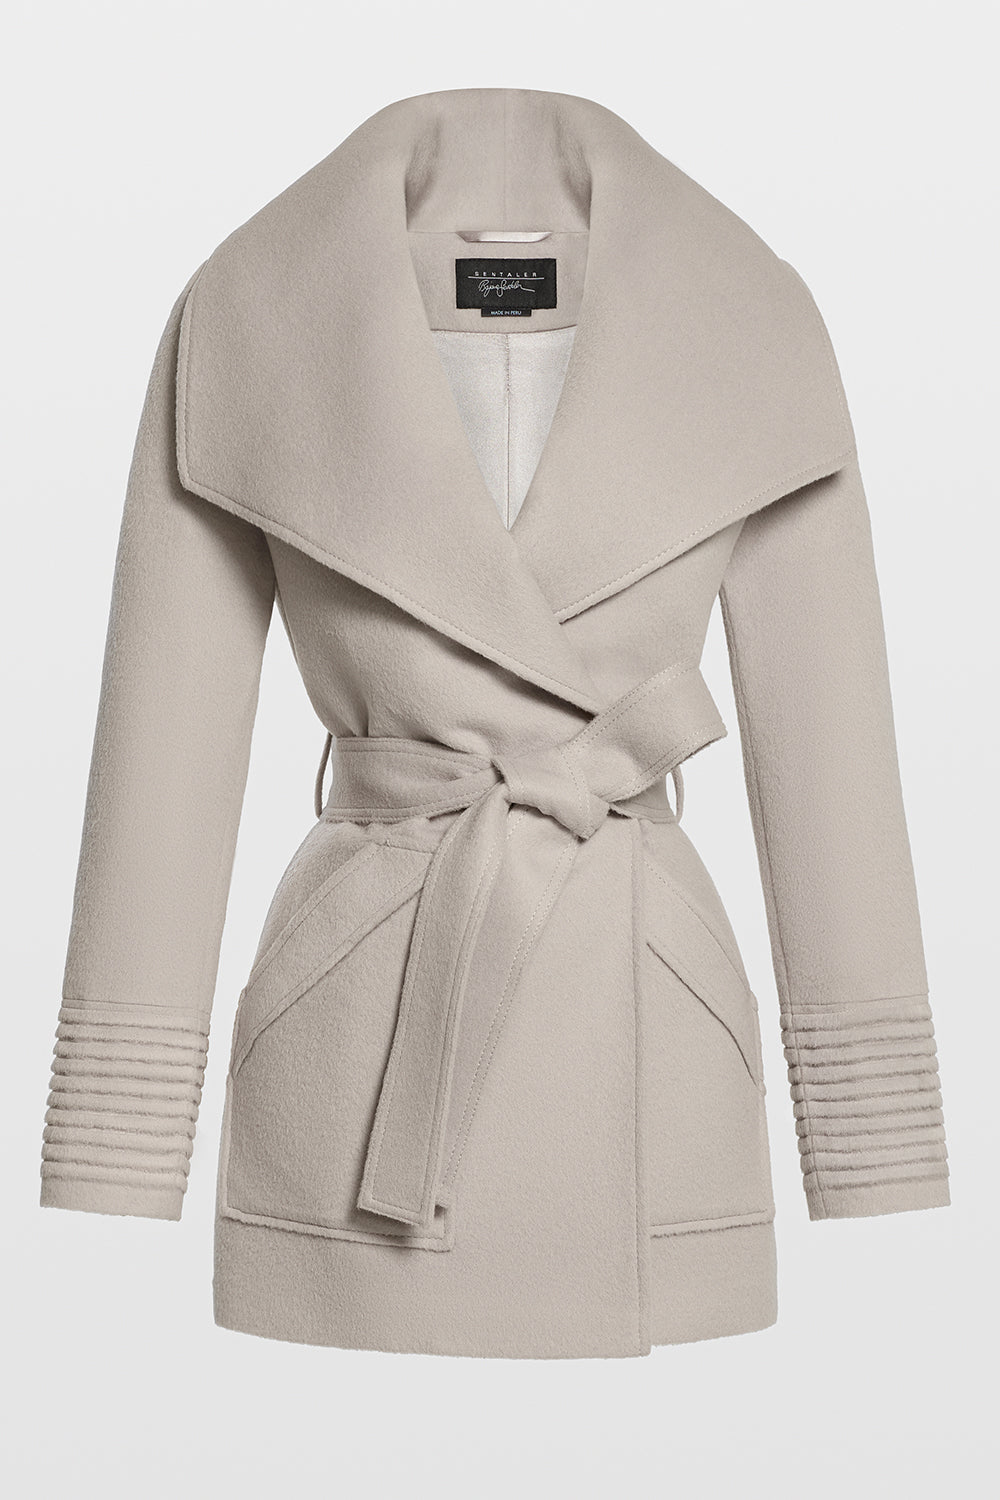 Sentaler Cropped Wide Collar Wrap Coat featured in Baby Alpaca and available in Bleeker Beige. Seen off model.